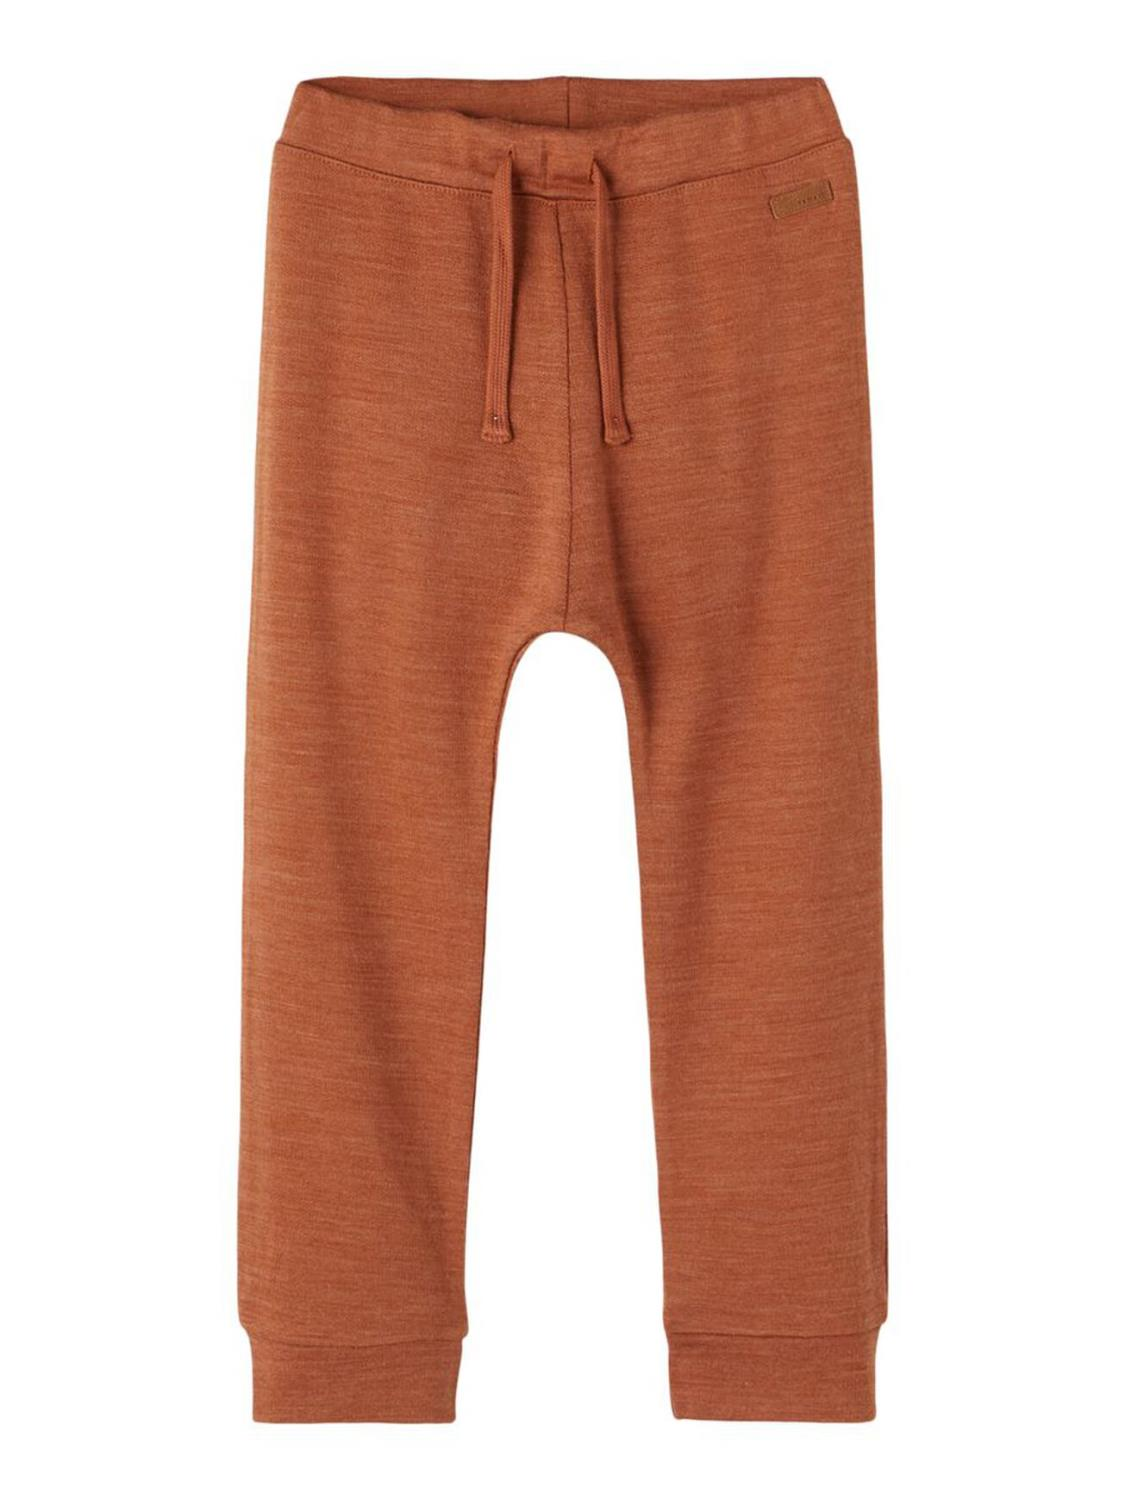 Wesso Wool Sweat Pant - Mocha Bisque